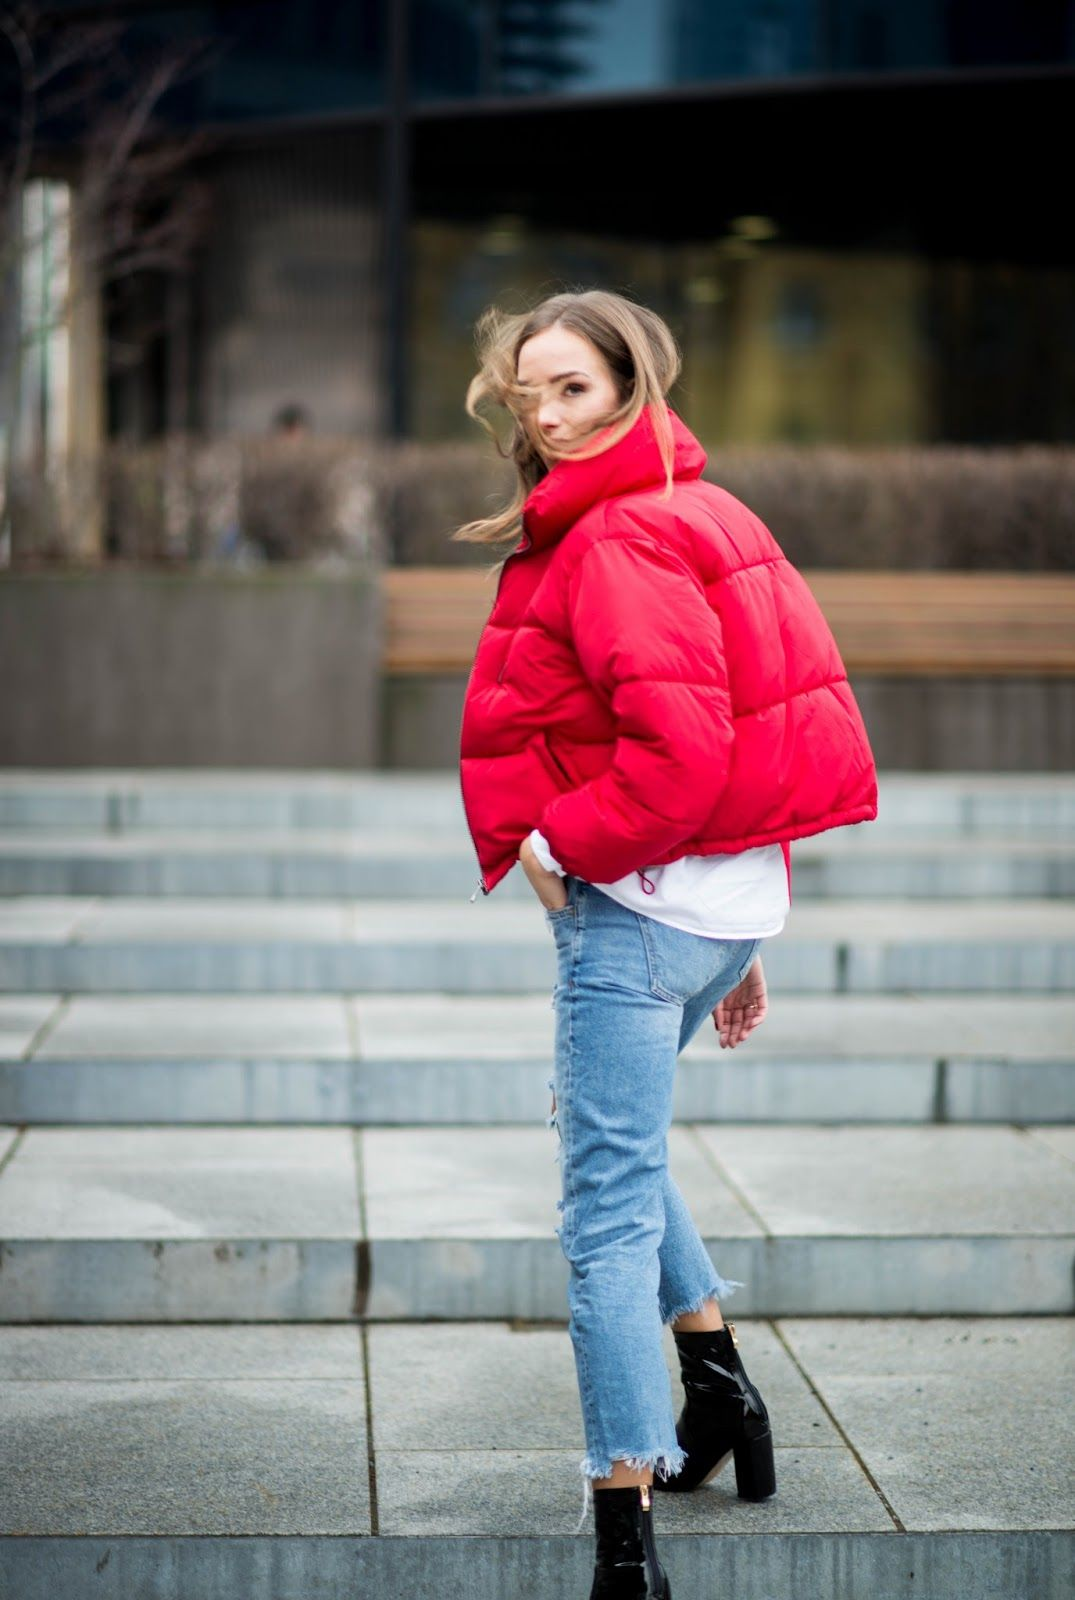 red puffy jacket outfit Automne 2018, Automne Hiver, Hivernal, Doudoune,  Penderie,